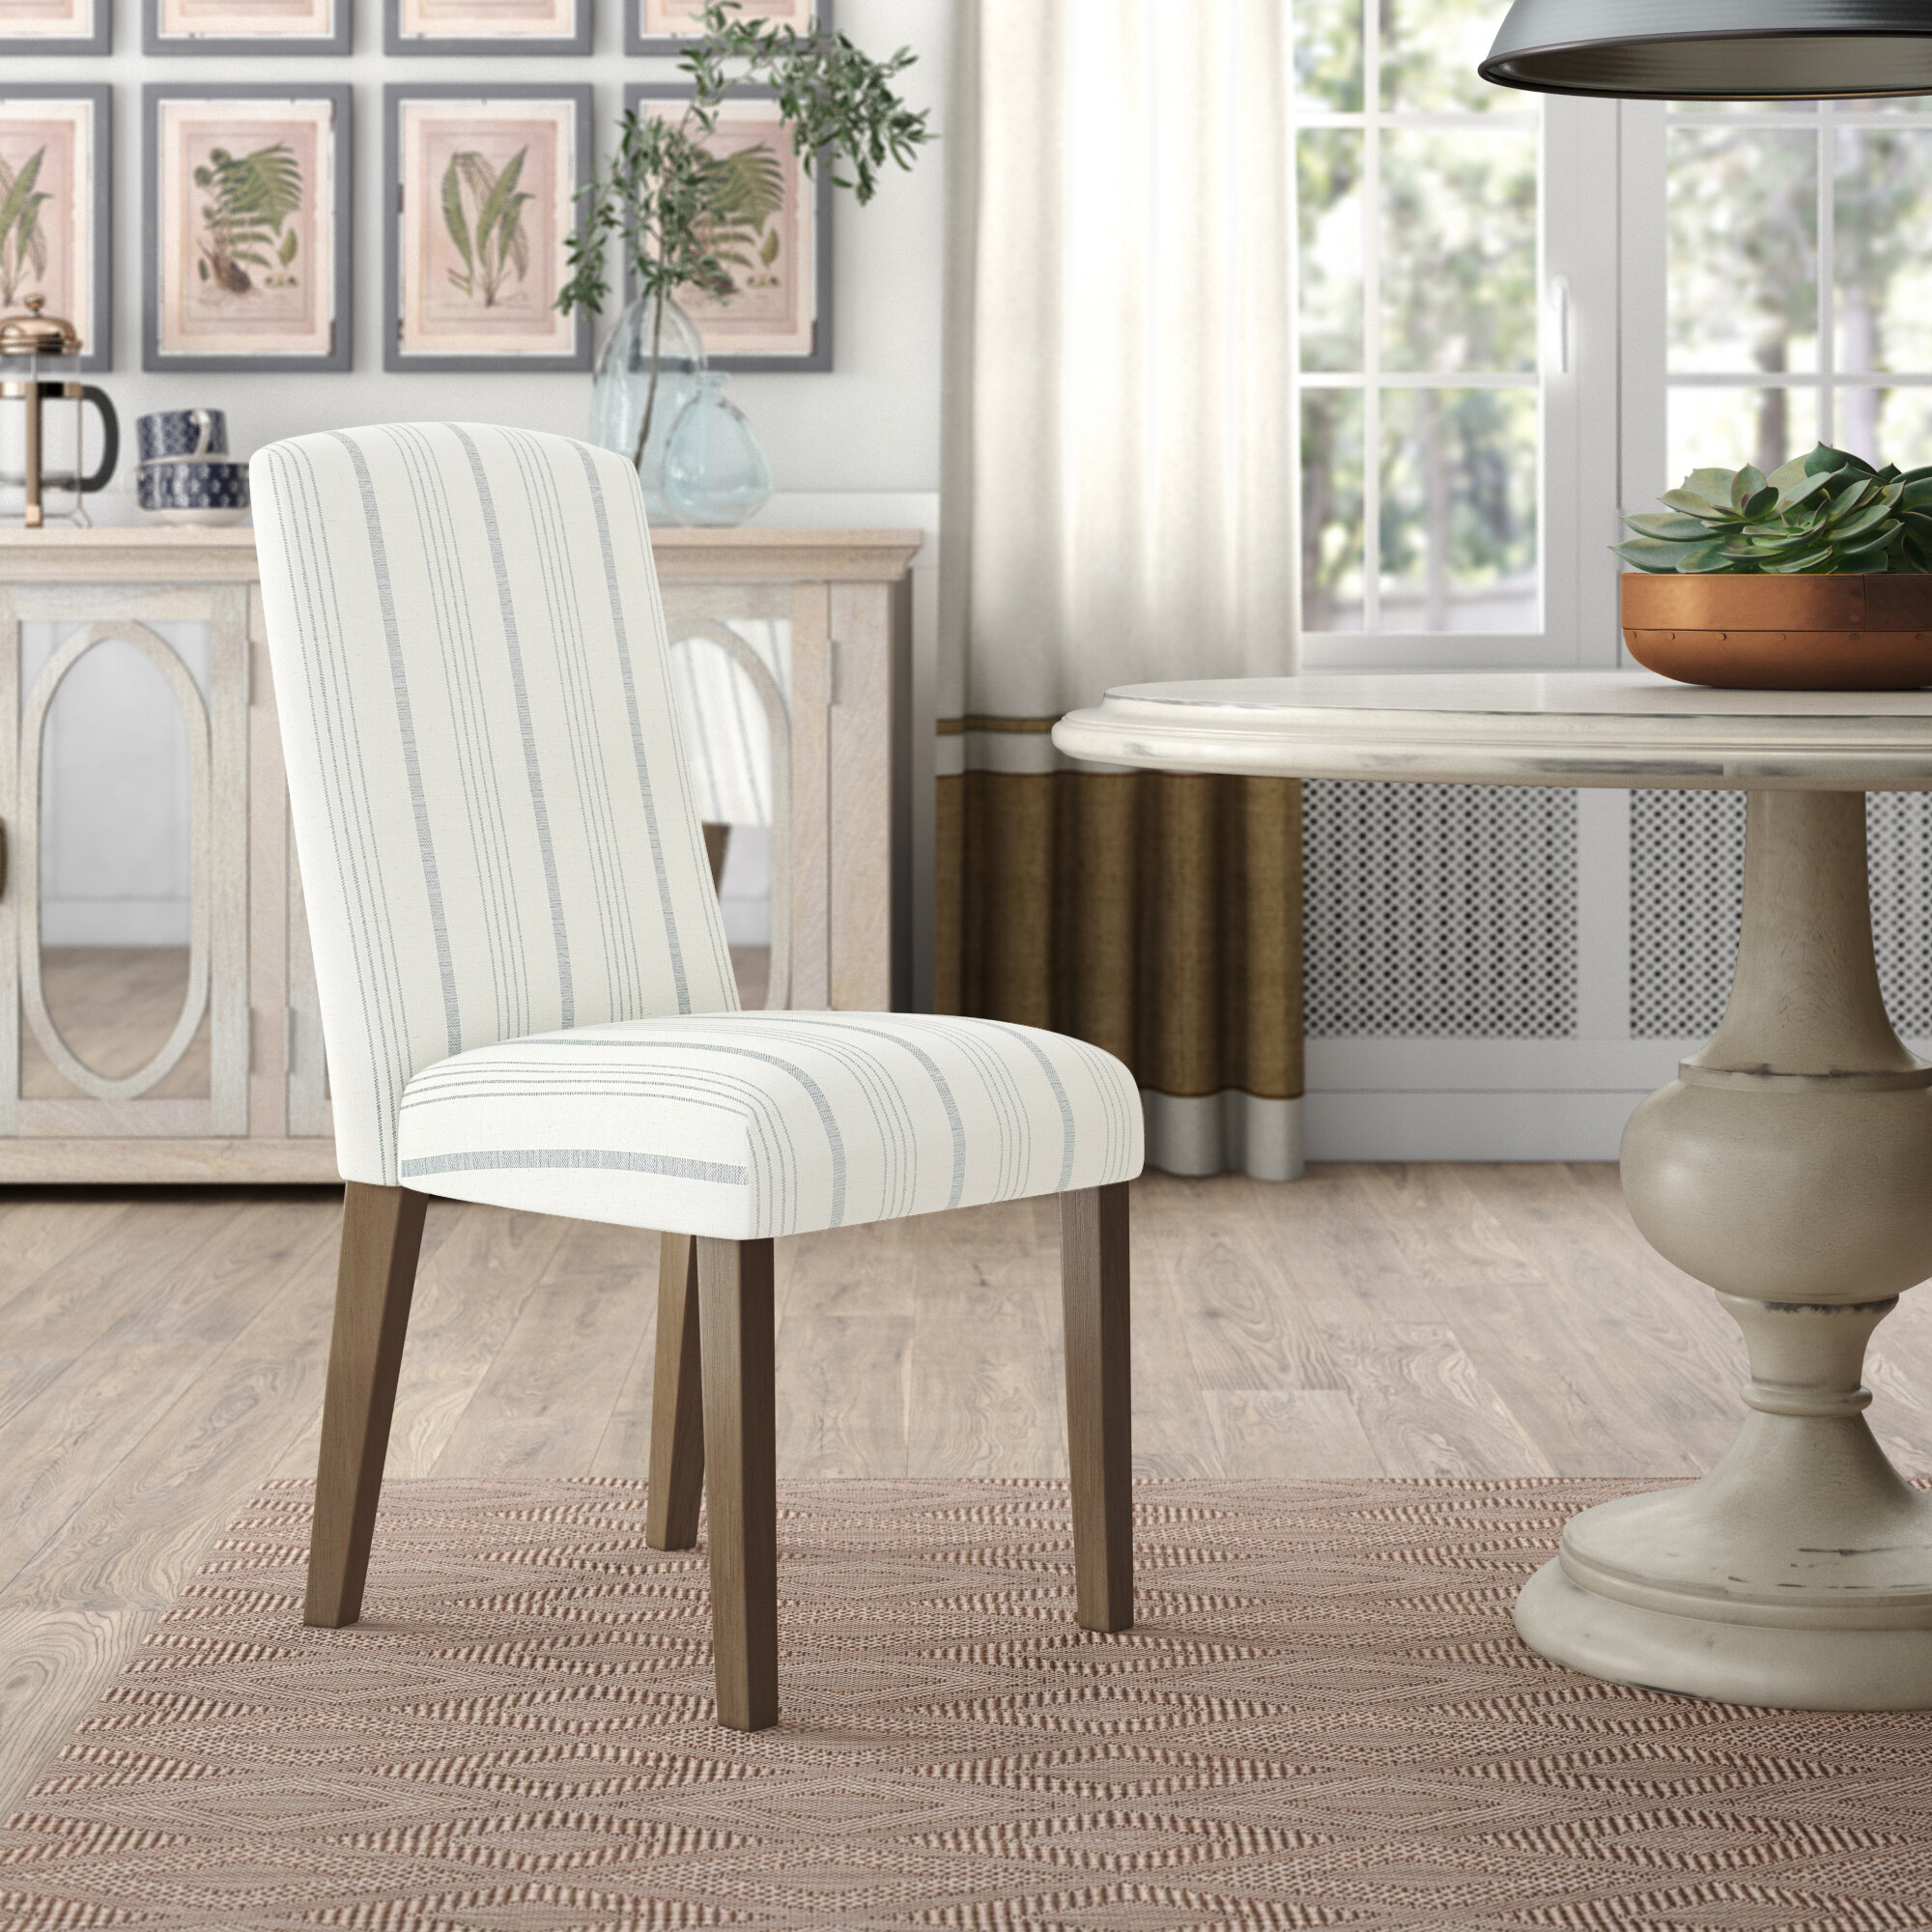 Fabric Kitchen & Dining Chairs You'Ll Love In 2021 | Wayfair Intended For Madison Avenue Tufted Cotton Upholstered Dining Chairs (Set Of 2) (View 9 of 15)